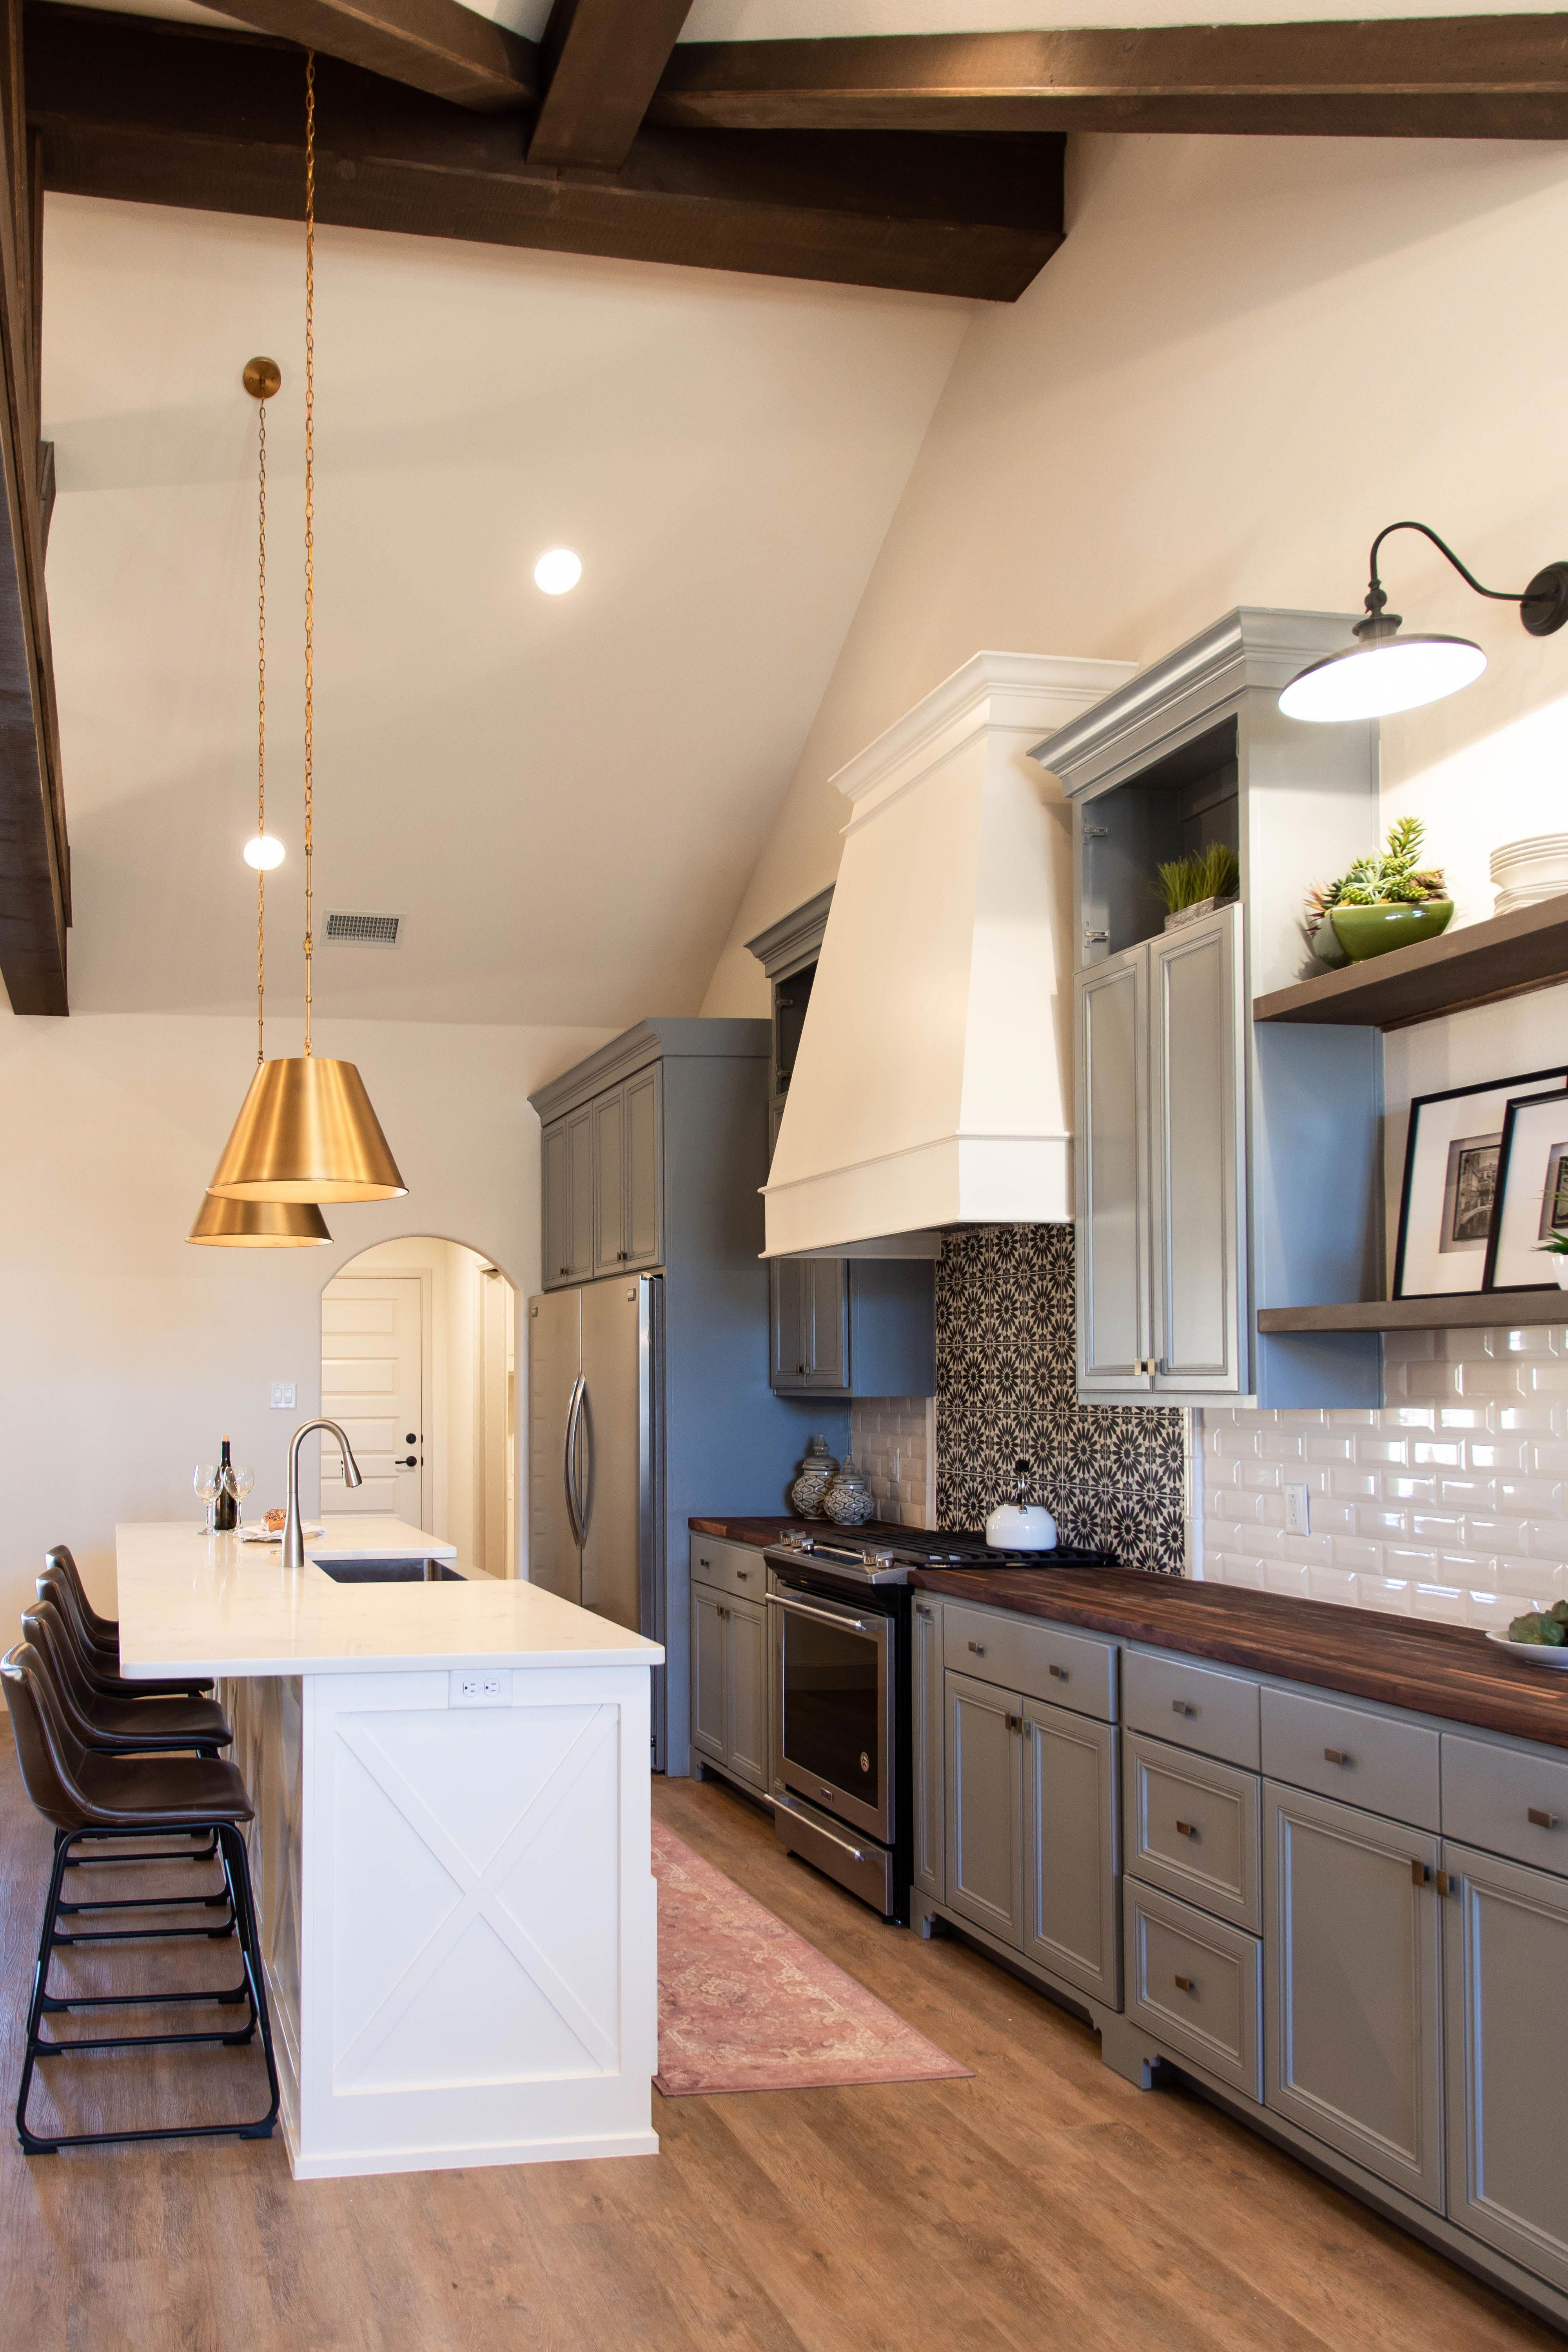 1960s Kitchen Remodel Before After: Find Other Ideas: Kitchen Countertops Remodeling On A